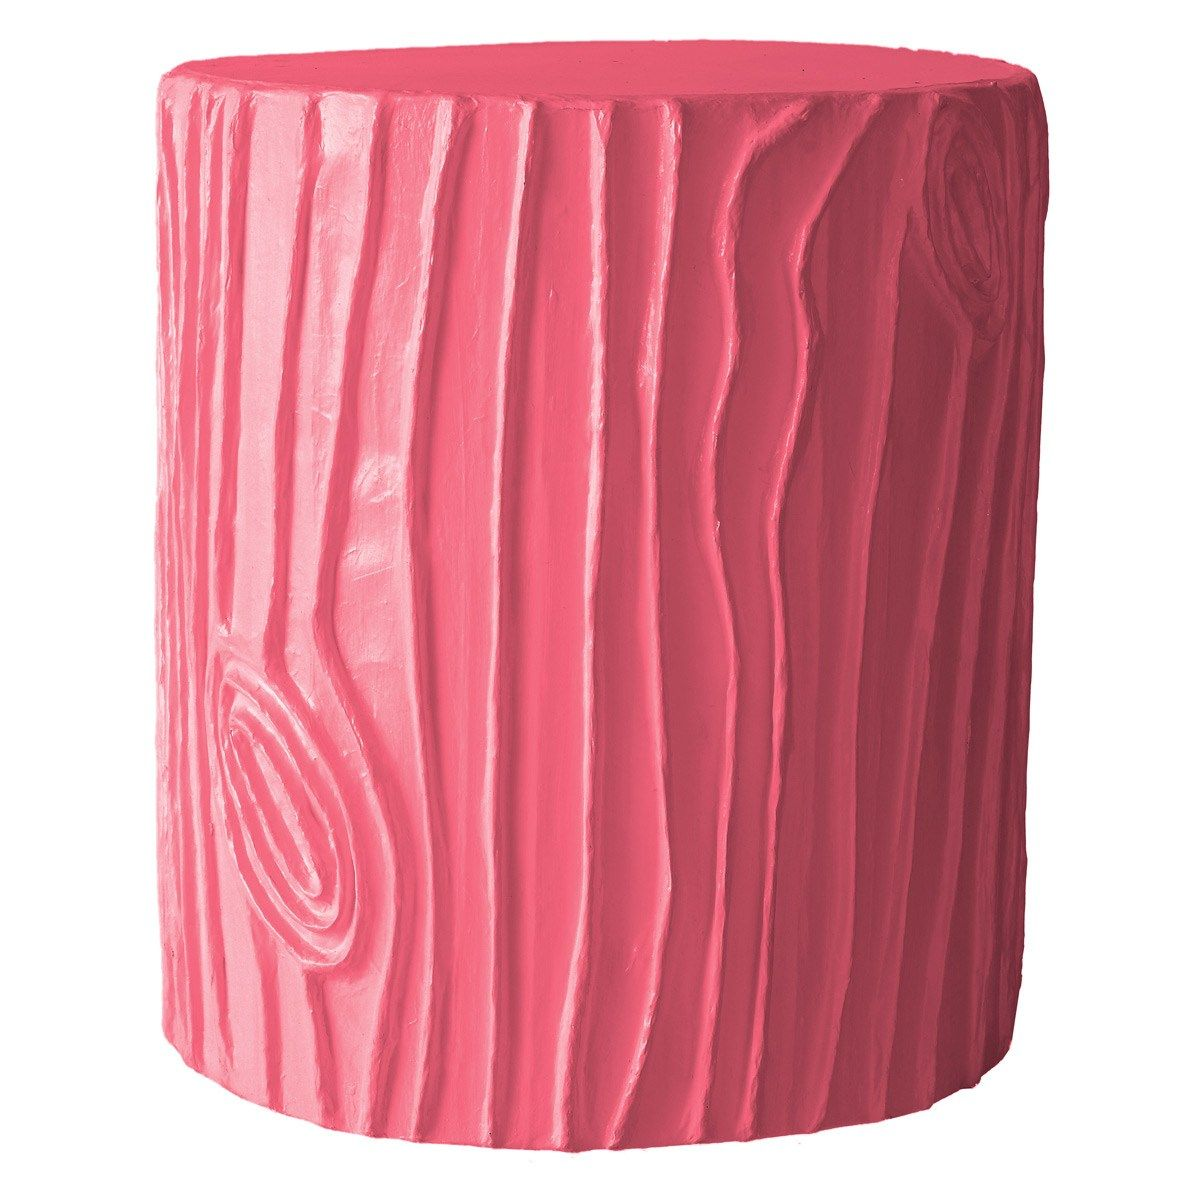 Stray Dog Designs Stump Pink Stool/Accent Table-cute! | Future ...